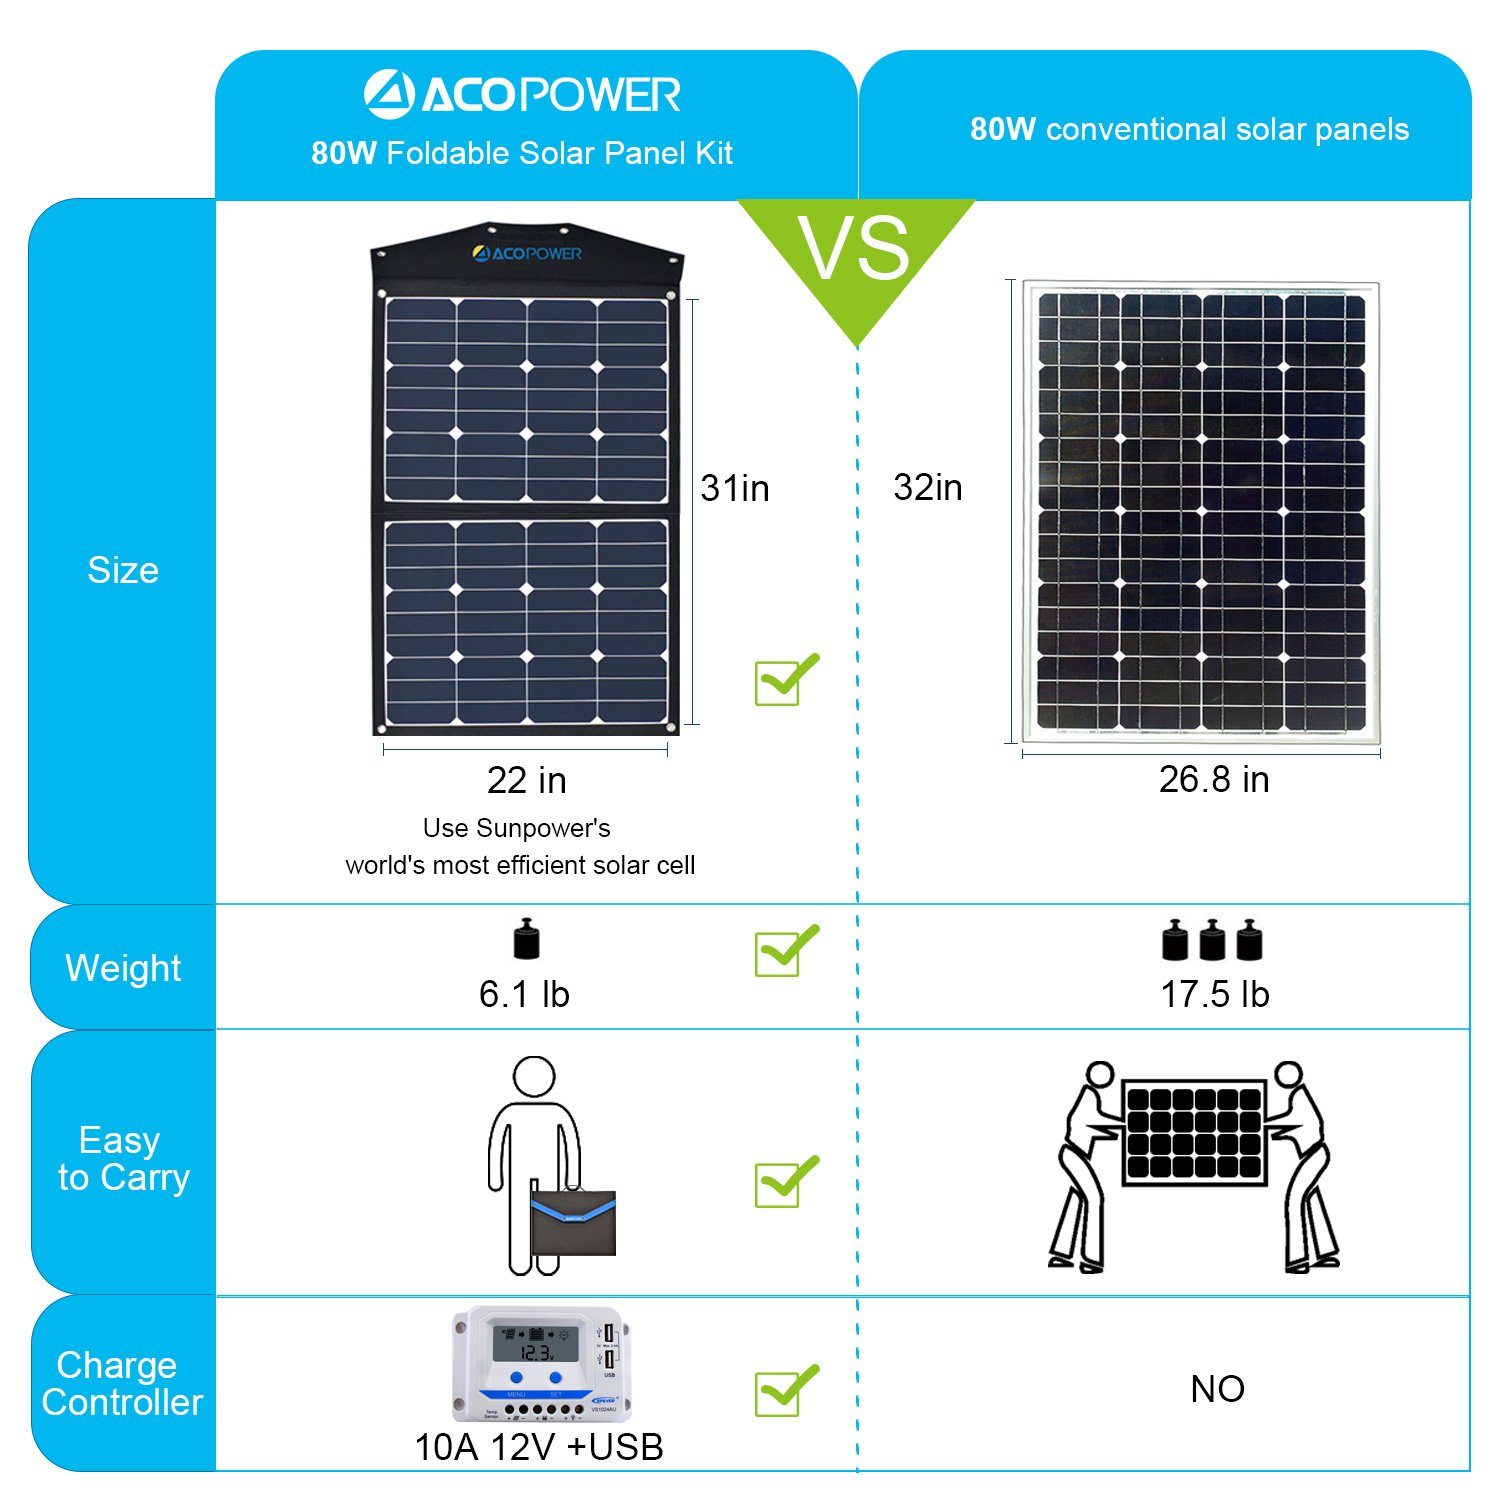 ACOPOWER 80W Foldable Solar Panel, 12V Portable Solar Kit with 10A LCD Charge Controller in Suitcase